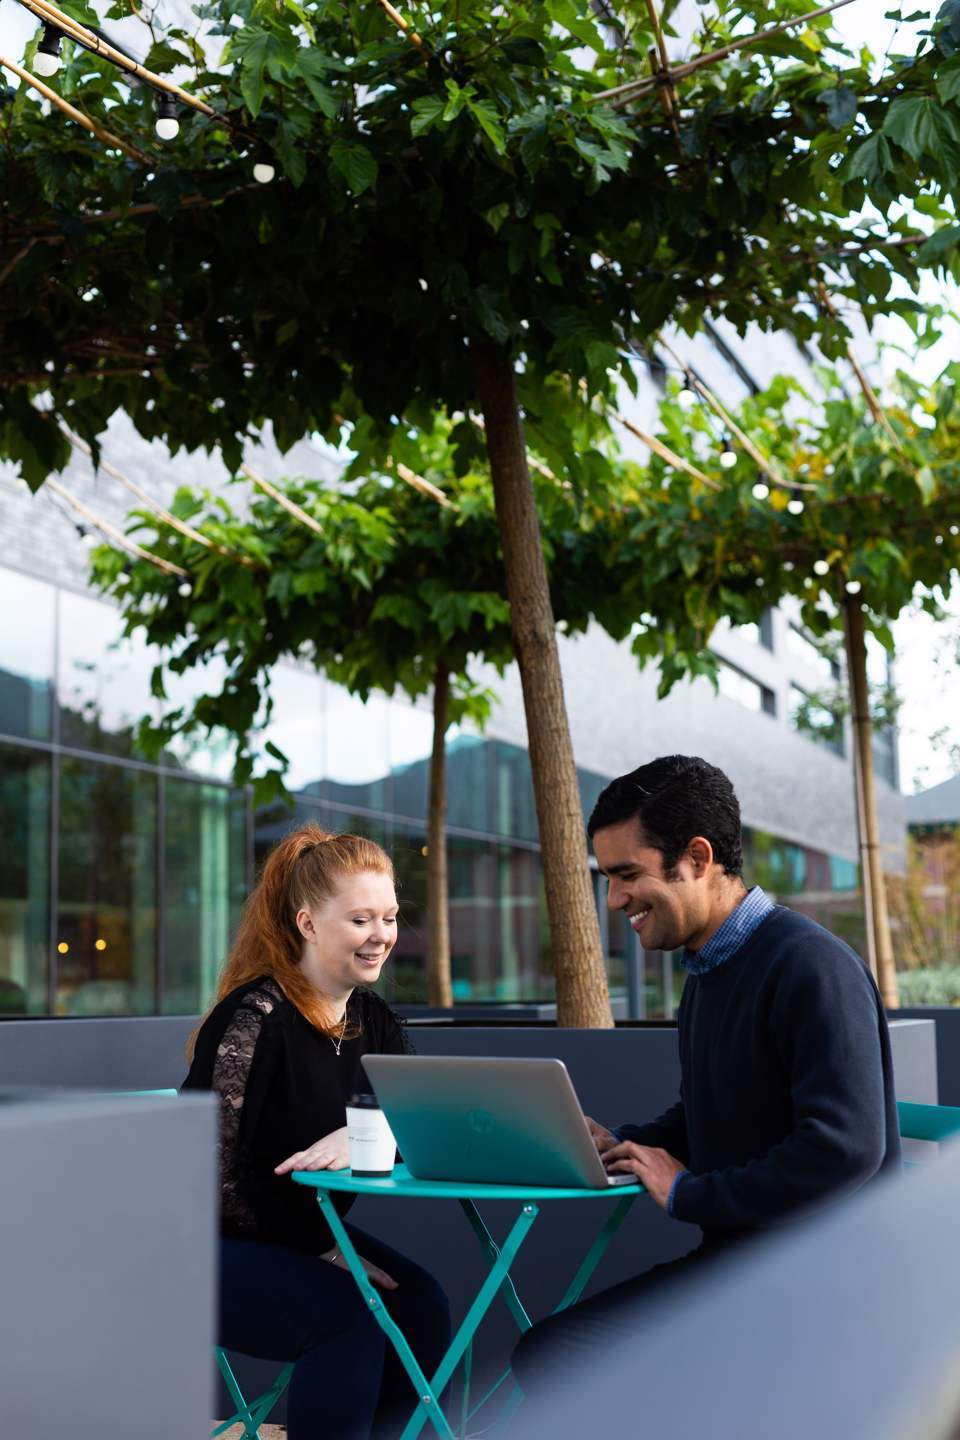 Man and a woman sat at a desk outside smiling while working on a laptop